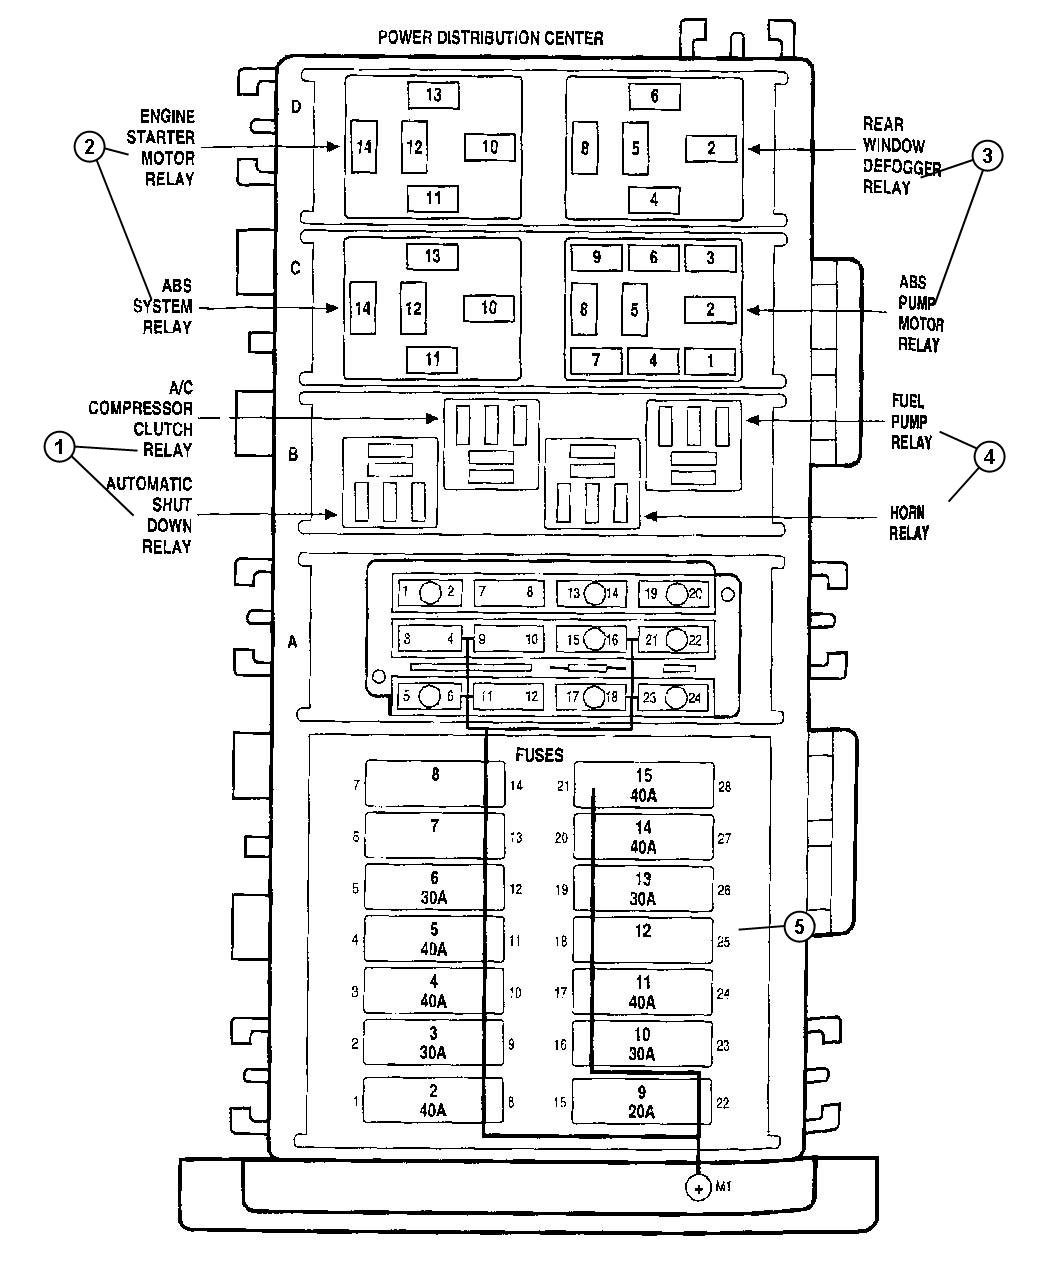 1997 Jeep Wrangler Fuse And Relay Diagram Wiring Library Together With S L300 Besides Ccedd34 In Addition 582969521 Tp Further For The Box Under Hood